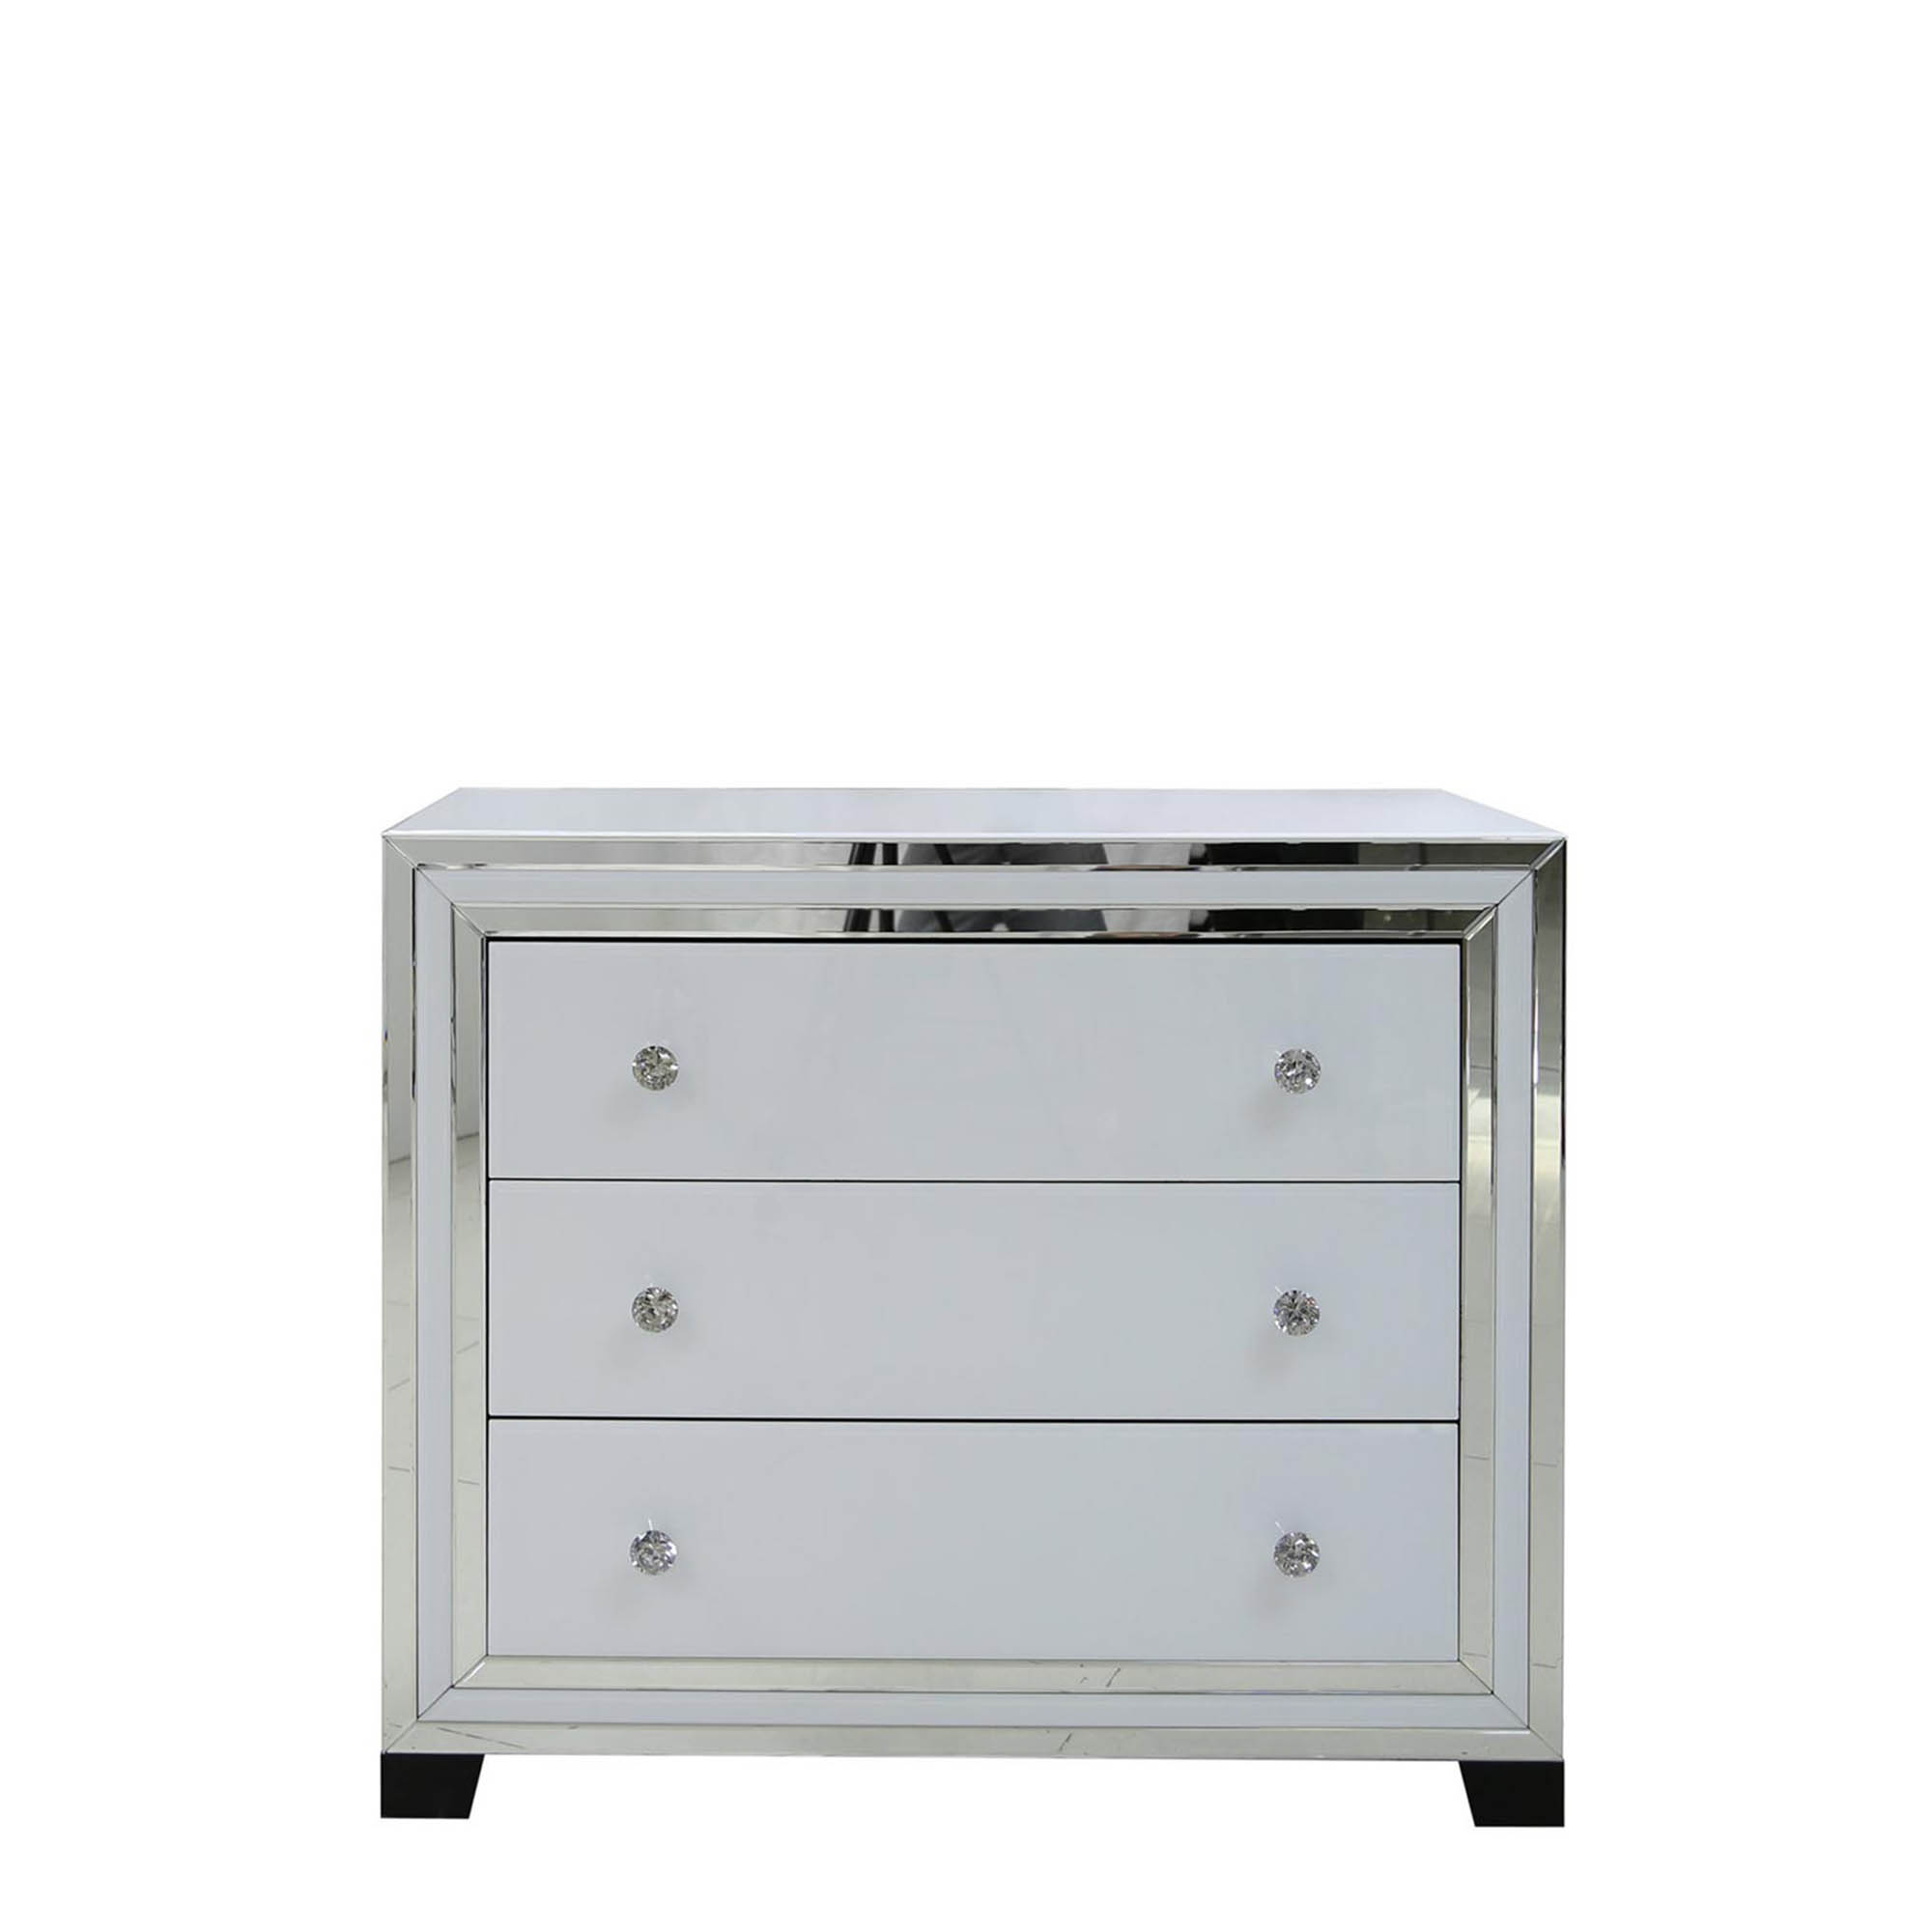 Chests of Drawers - Bedroom Chests - Fishpools